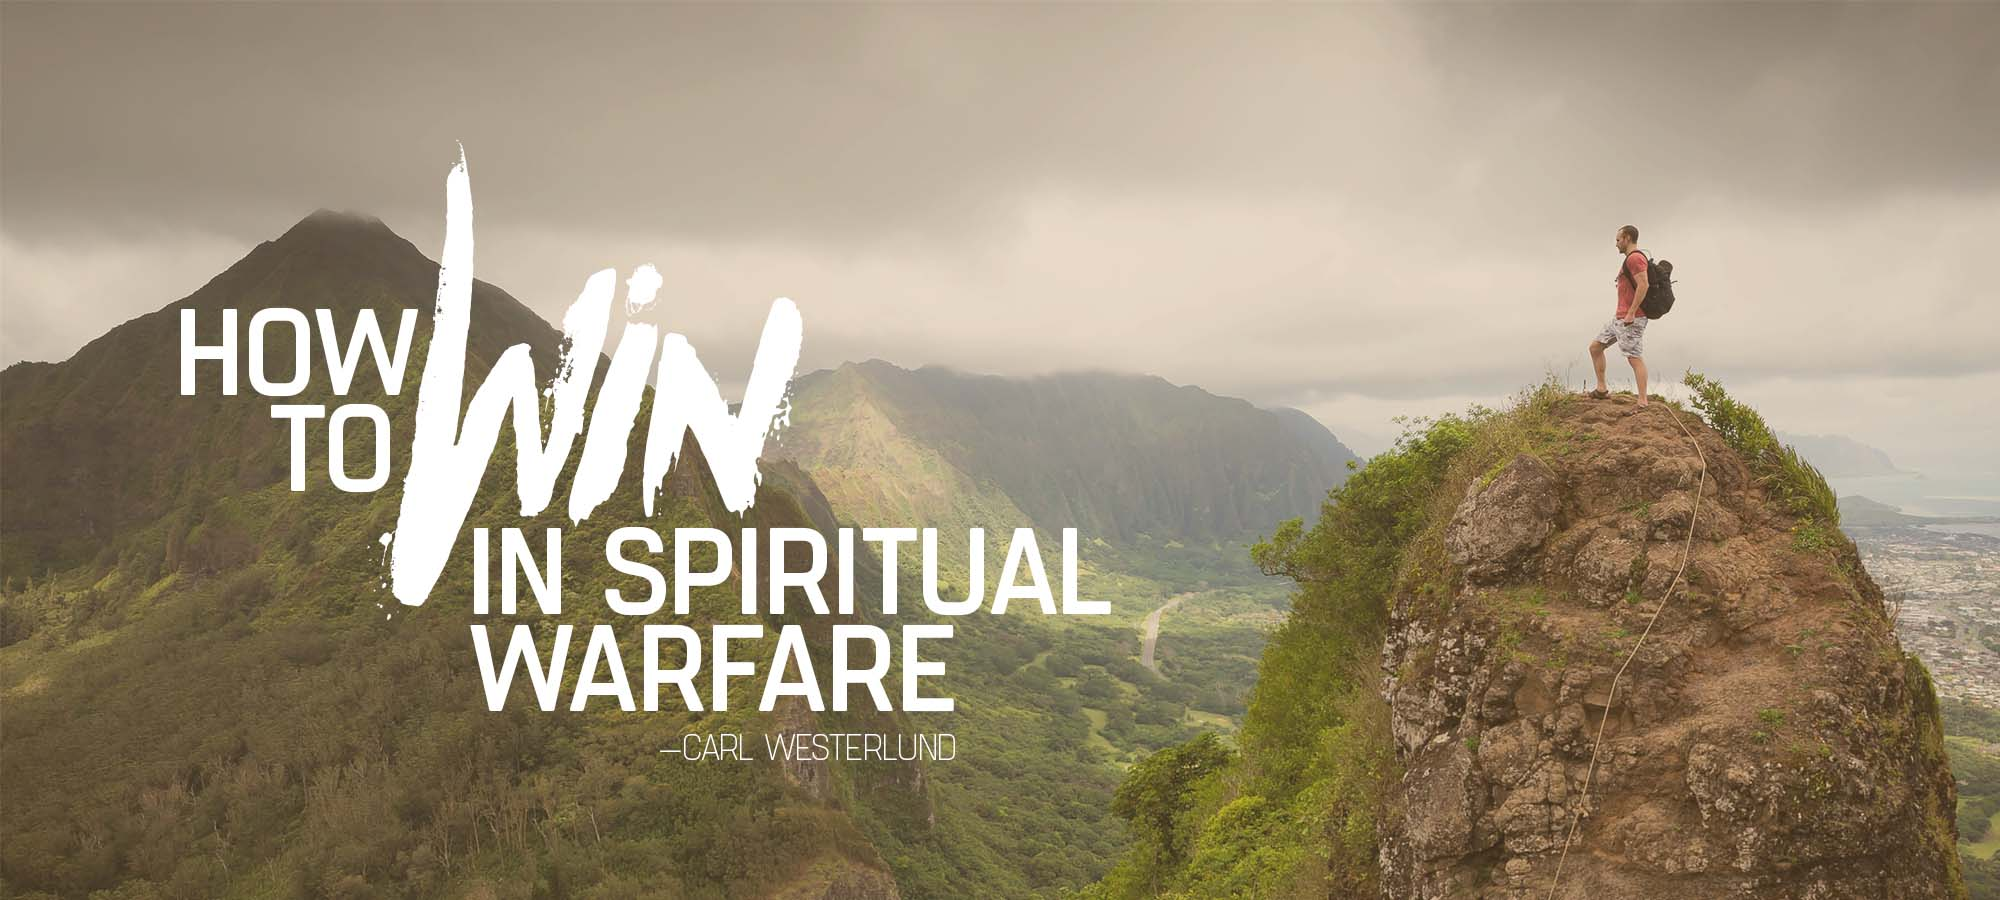 How to Win in Spiritual Warfare